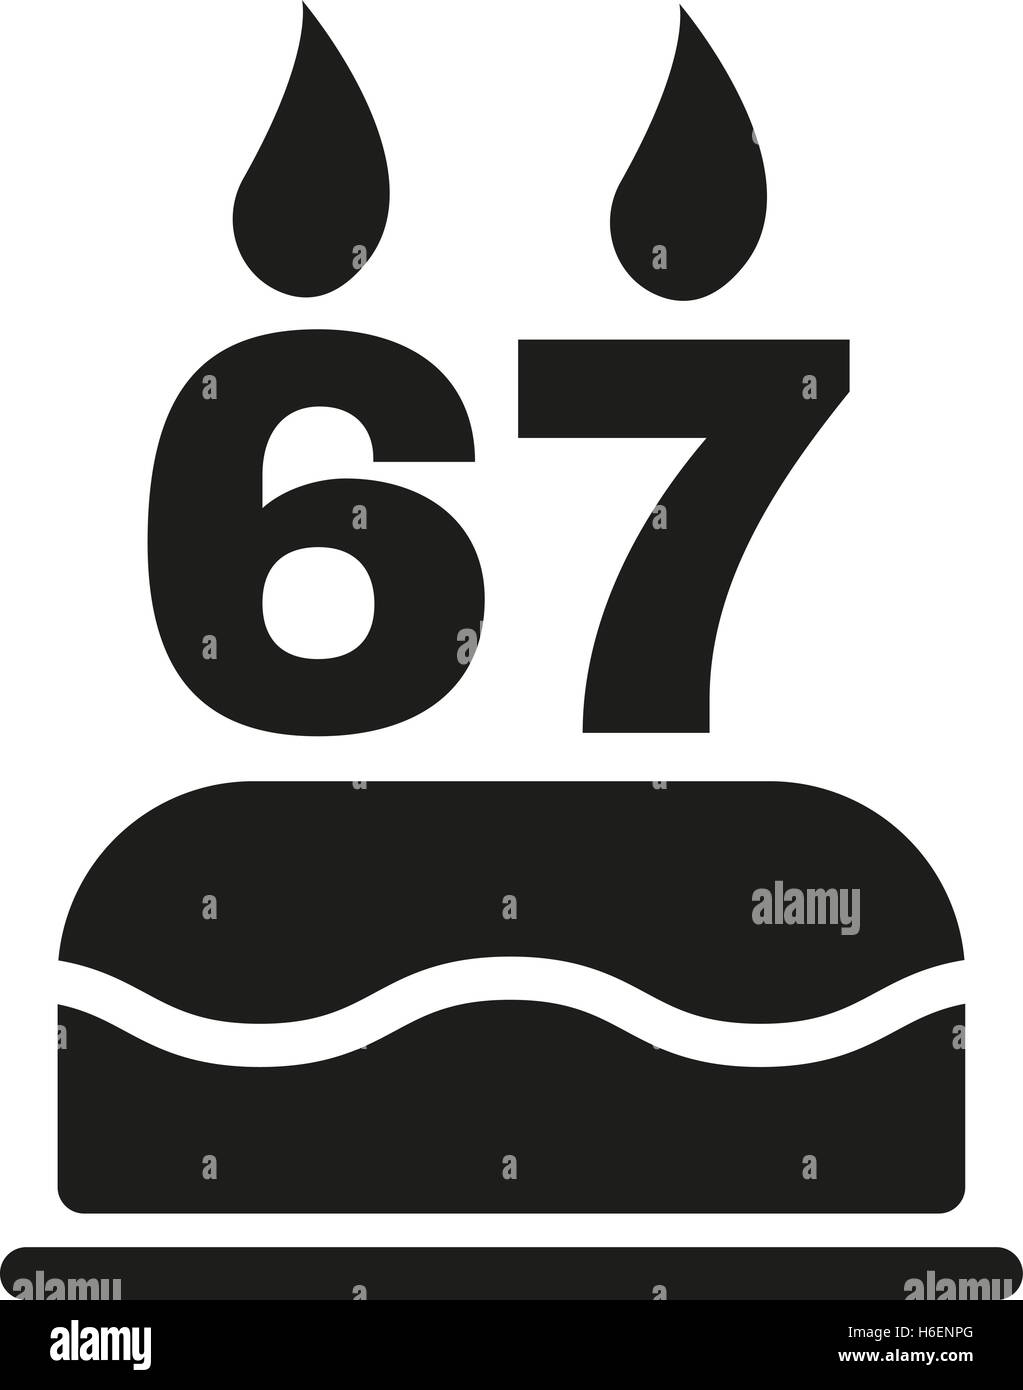 The birthday cake with candles in the form of number 67 icon stock the birthday cake with candles in the form of number 67 icon birthday symbol flat vector illustration buycottarizona